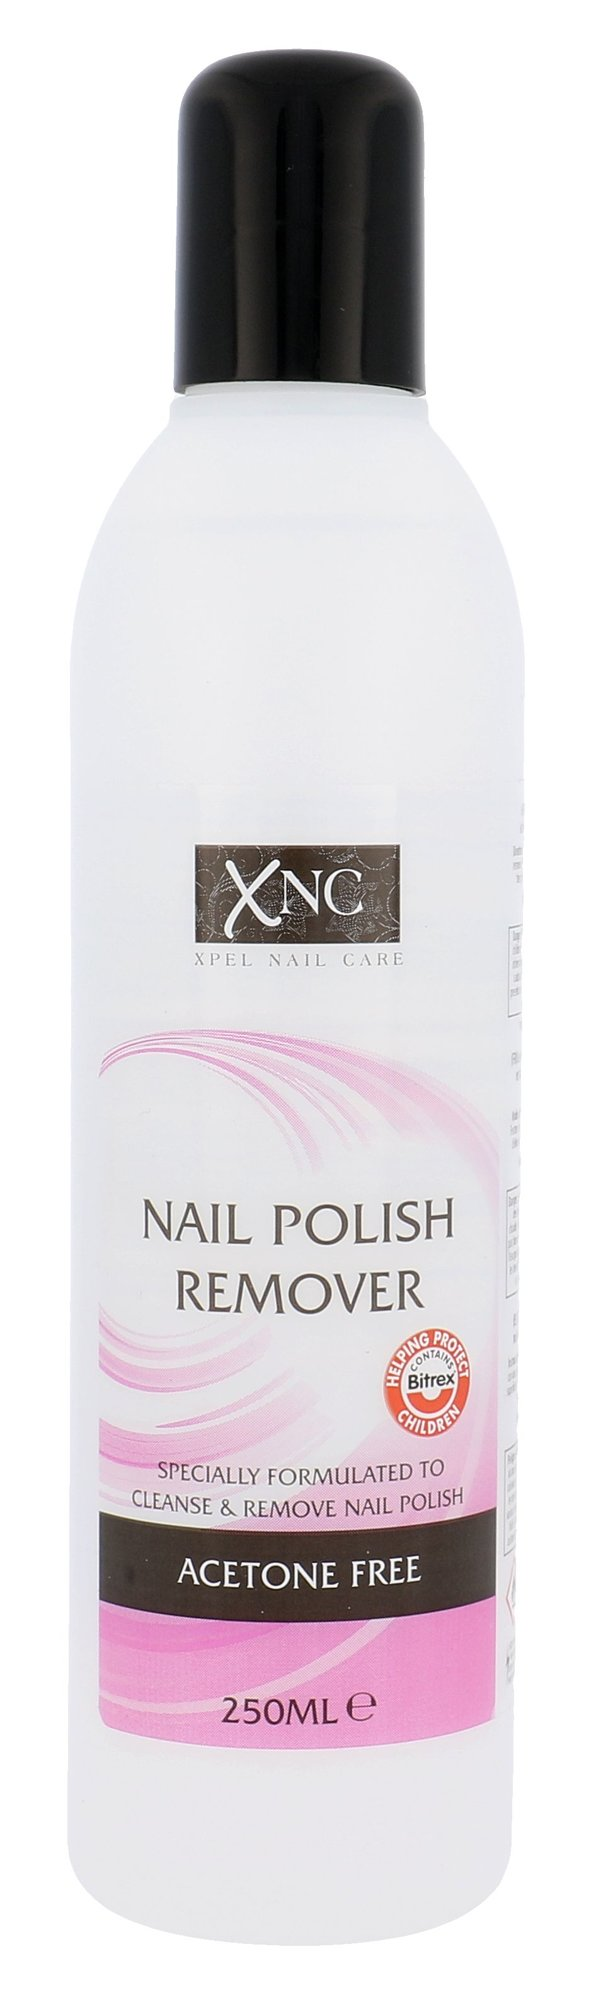 Xpel Nail Care Cosmetic 250ml